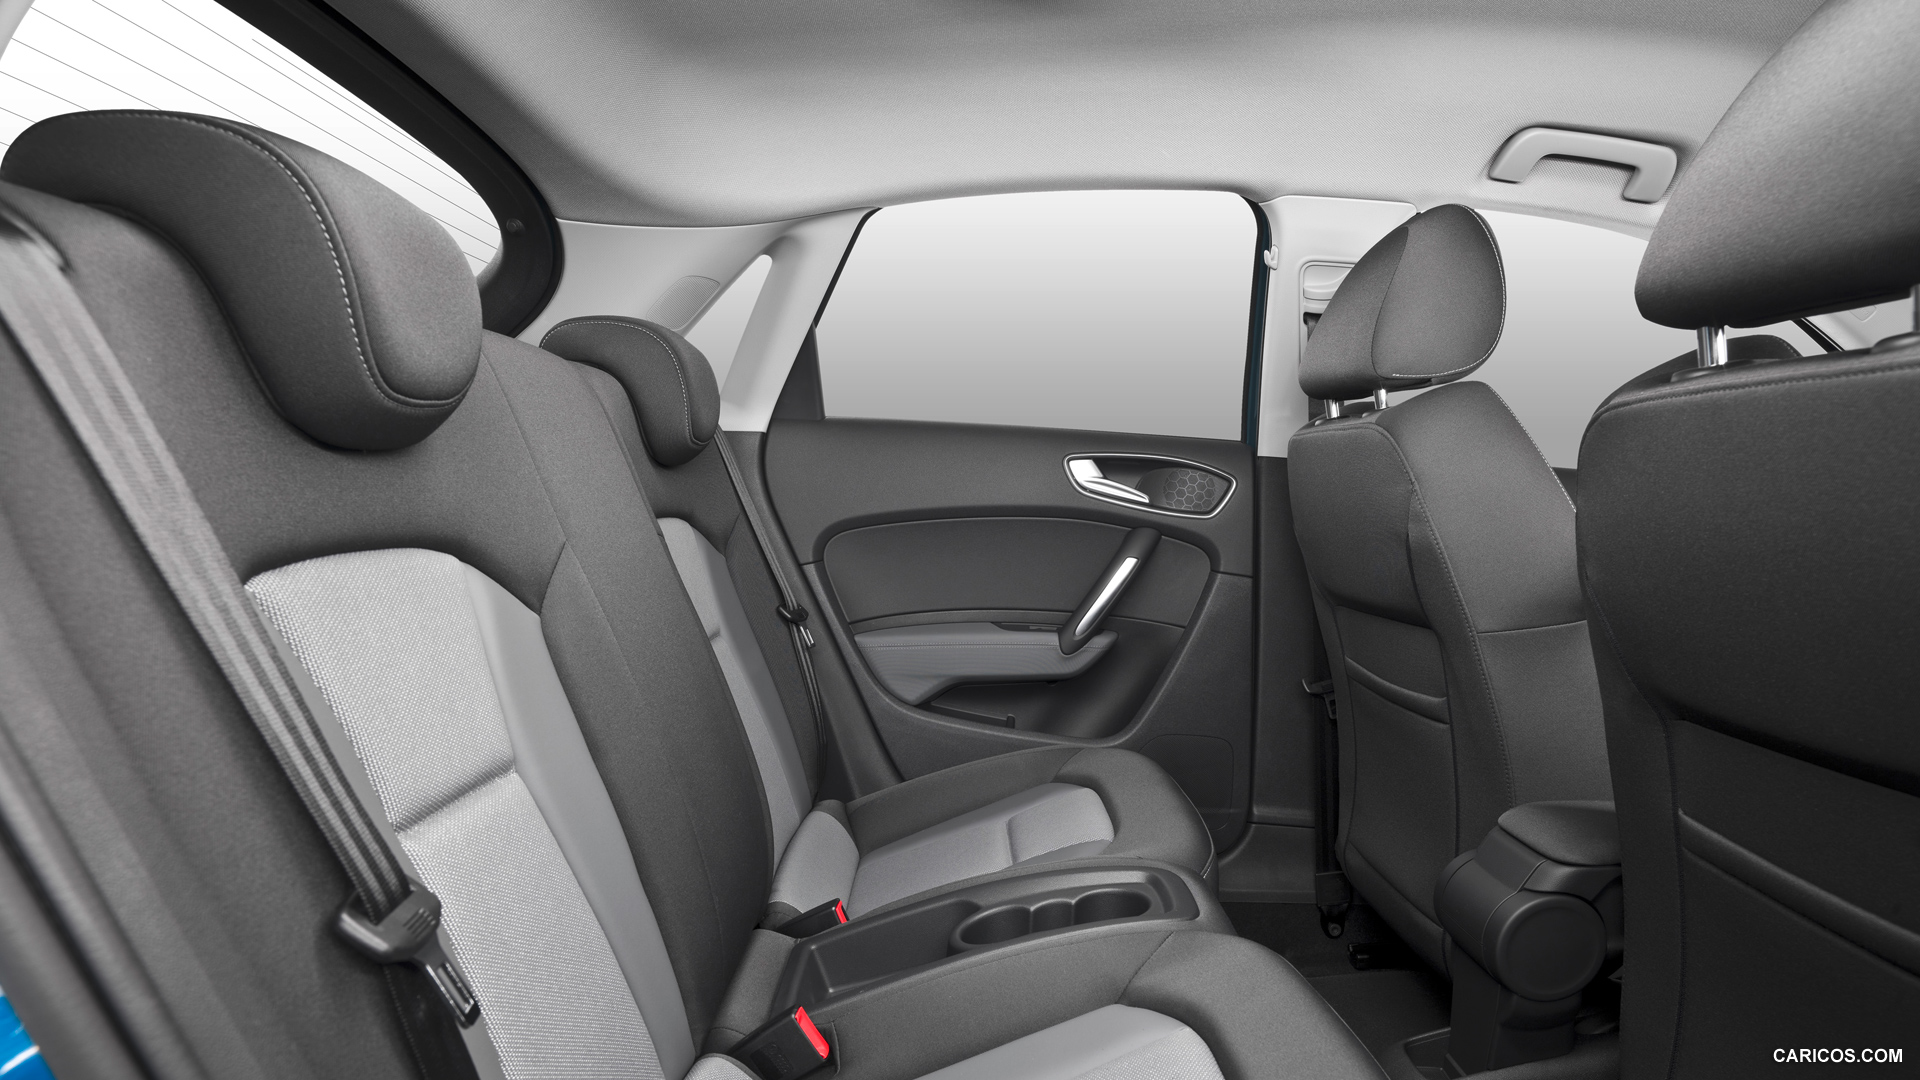 audi q1 2015 interior with a sporty and energetic design my car interior my car interior. Black Bedroom Furniture Sets. Home Design Ideas